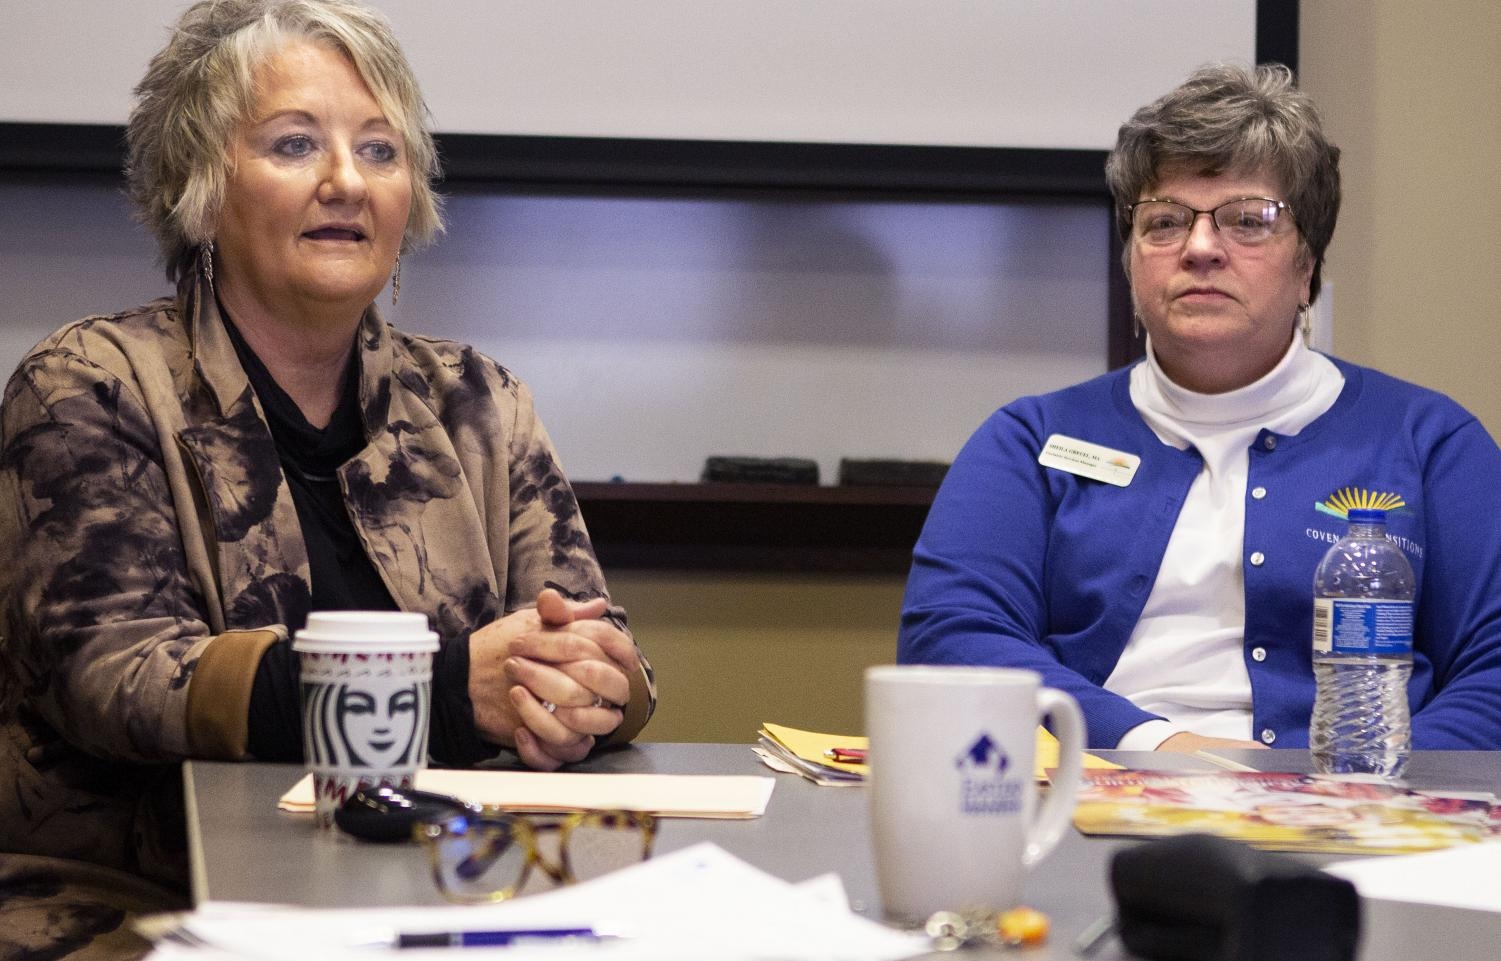 """Sheila Greuel (right), a geriatric services manager, listens as Michelle Matteson, a hospice manager and death doula worker, as she discusses what death doulas do and her own experiences as a death doula during """"Death Doulas: End of Life Role"""" at Blair Hall Thursday morning. Matteson said death doulas help fill in for hospice workers since hospice may not have time for too many questions. Death doulas also help support the family and patient emotionally."""